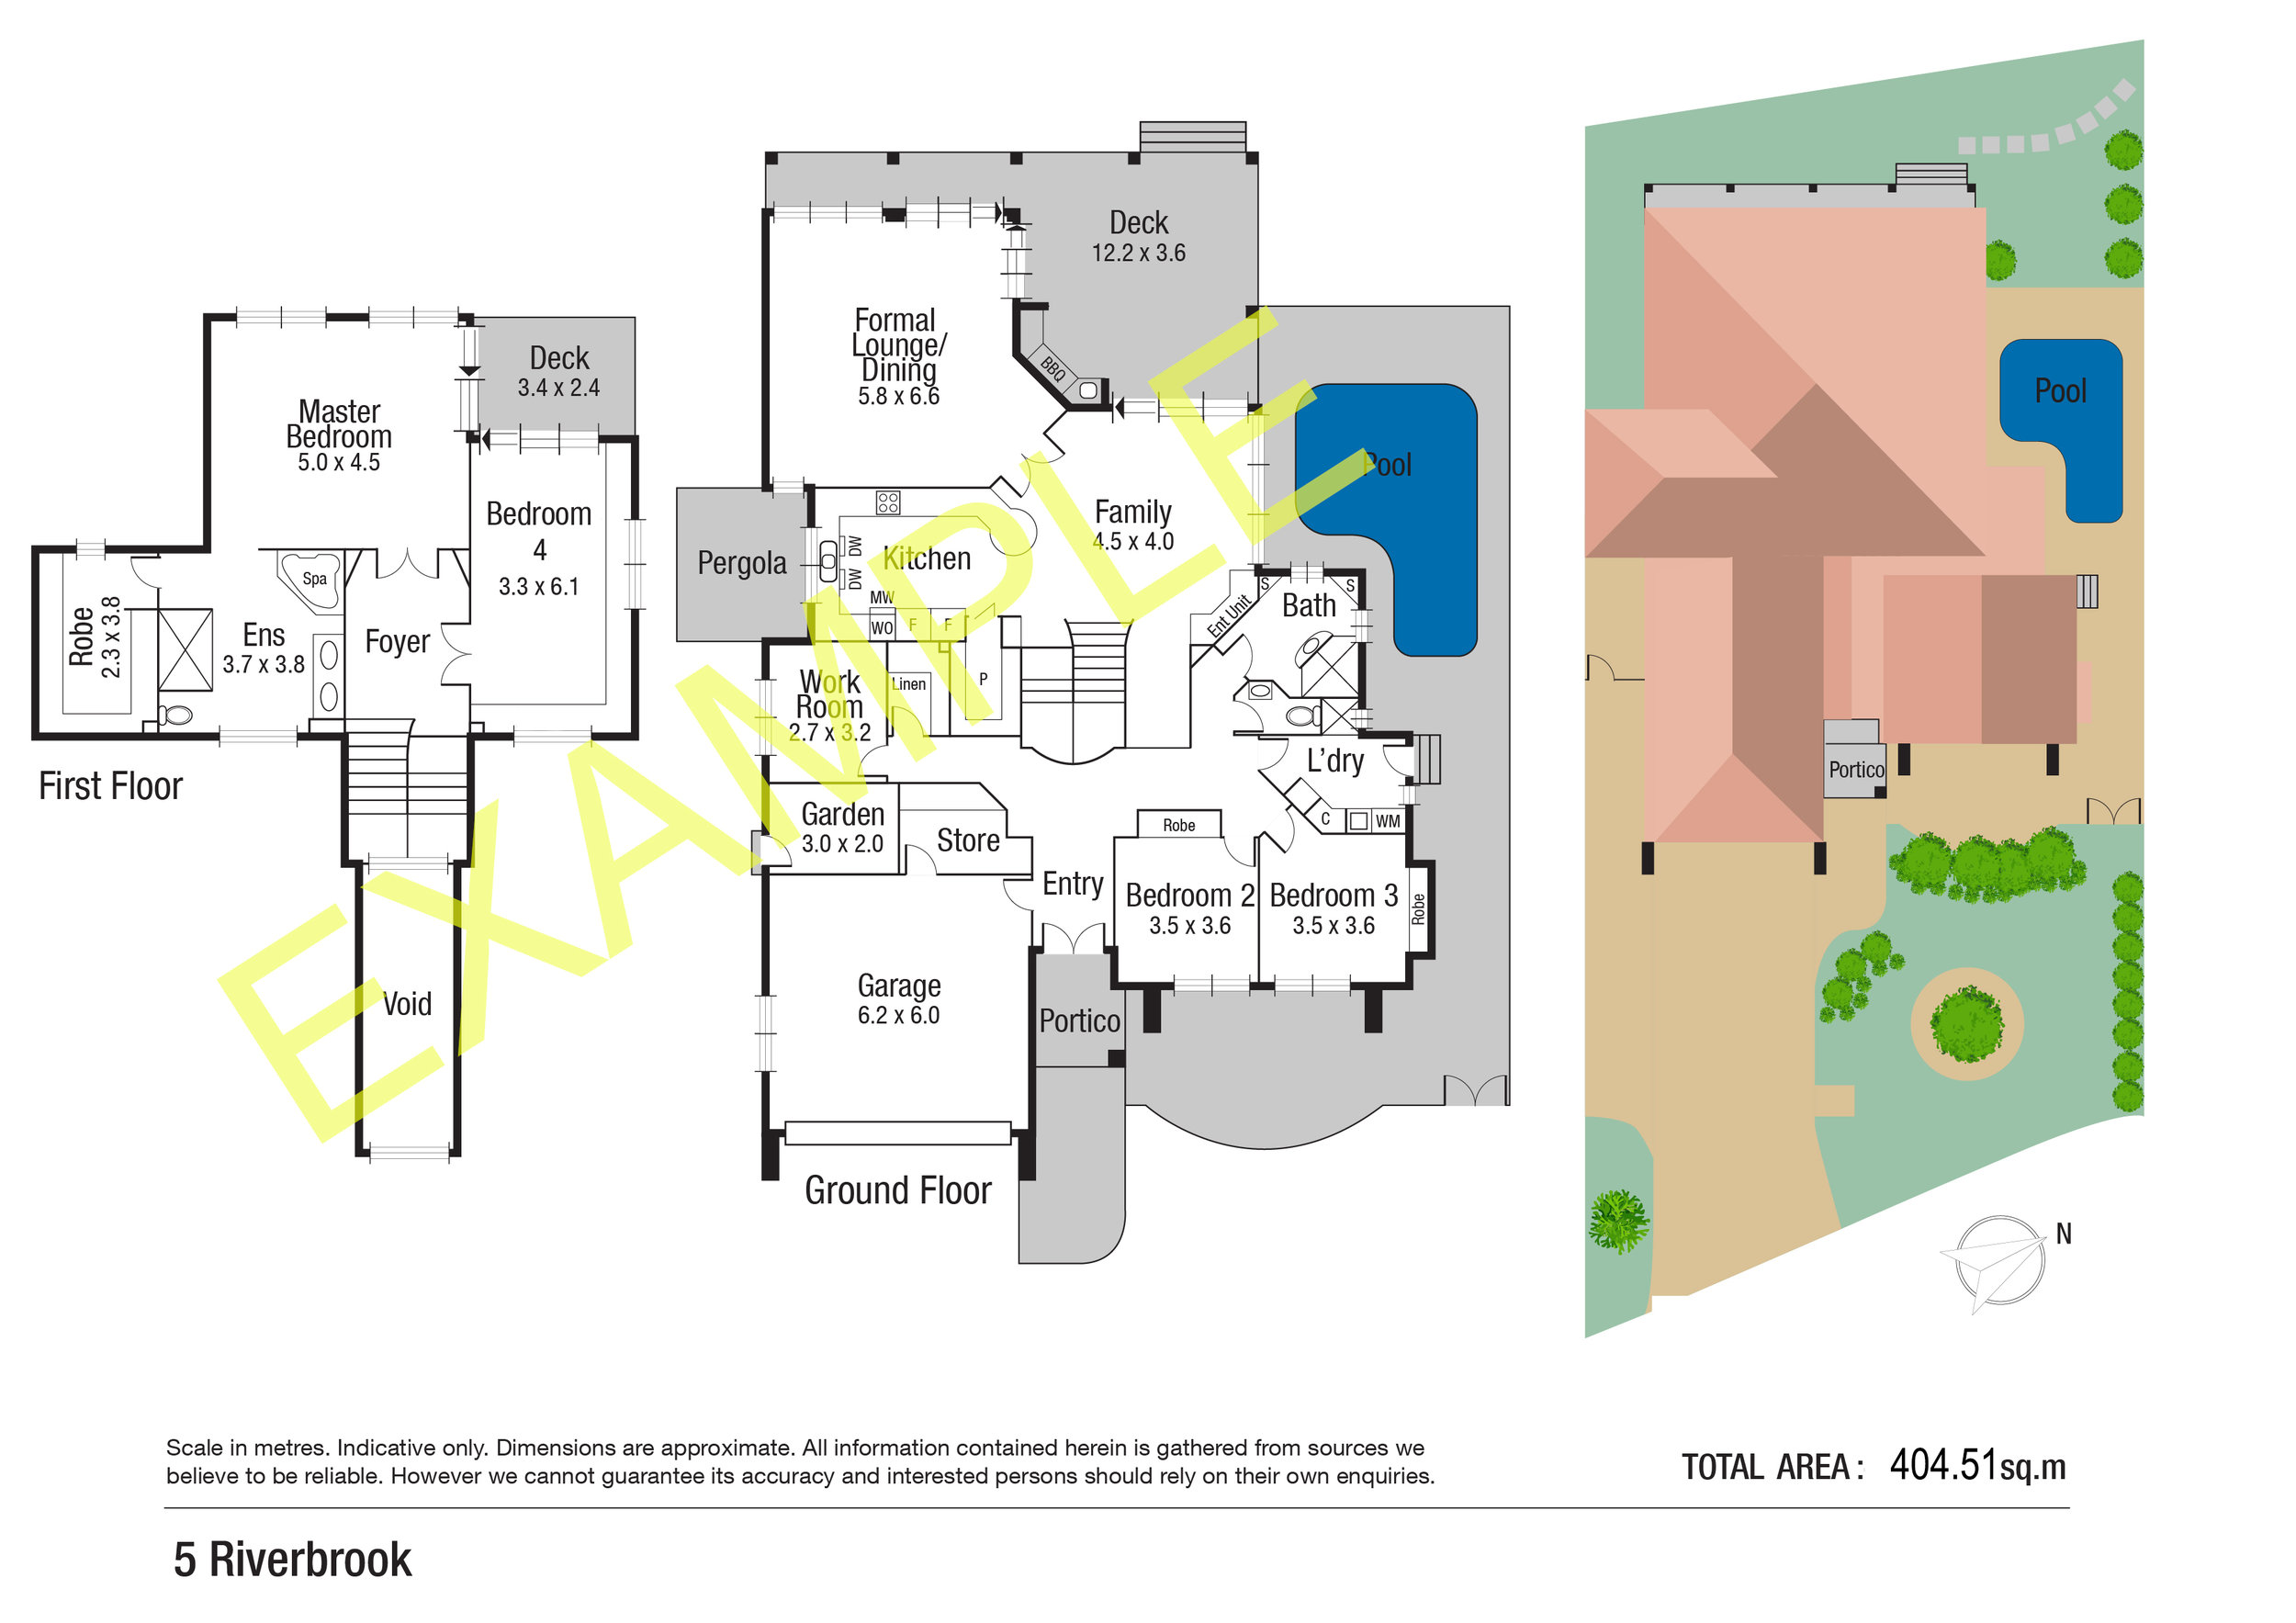 Site Plans with roof texture and landscaping $129